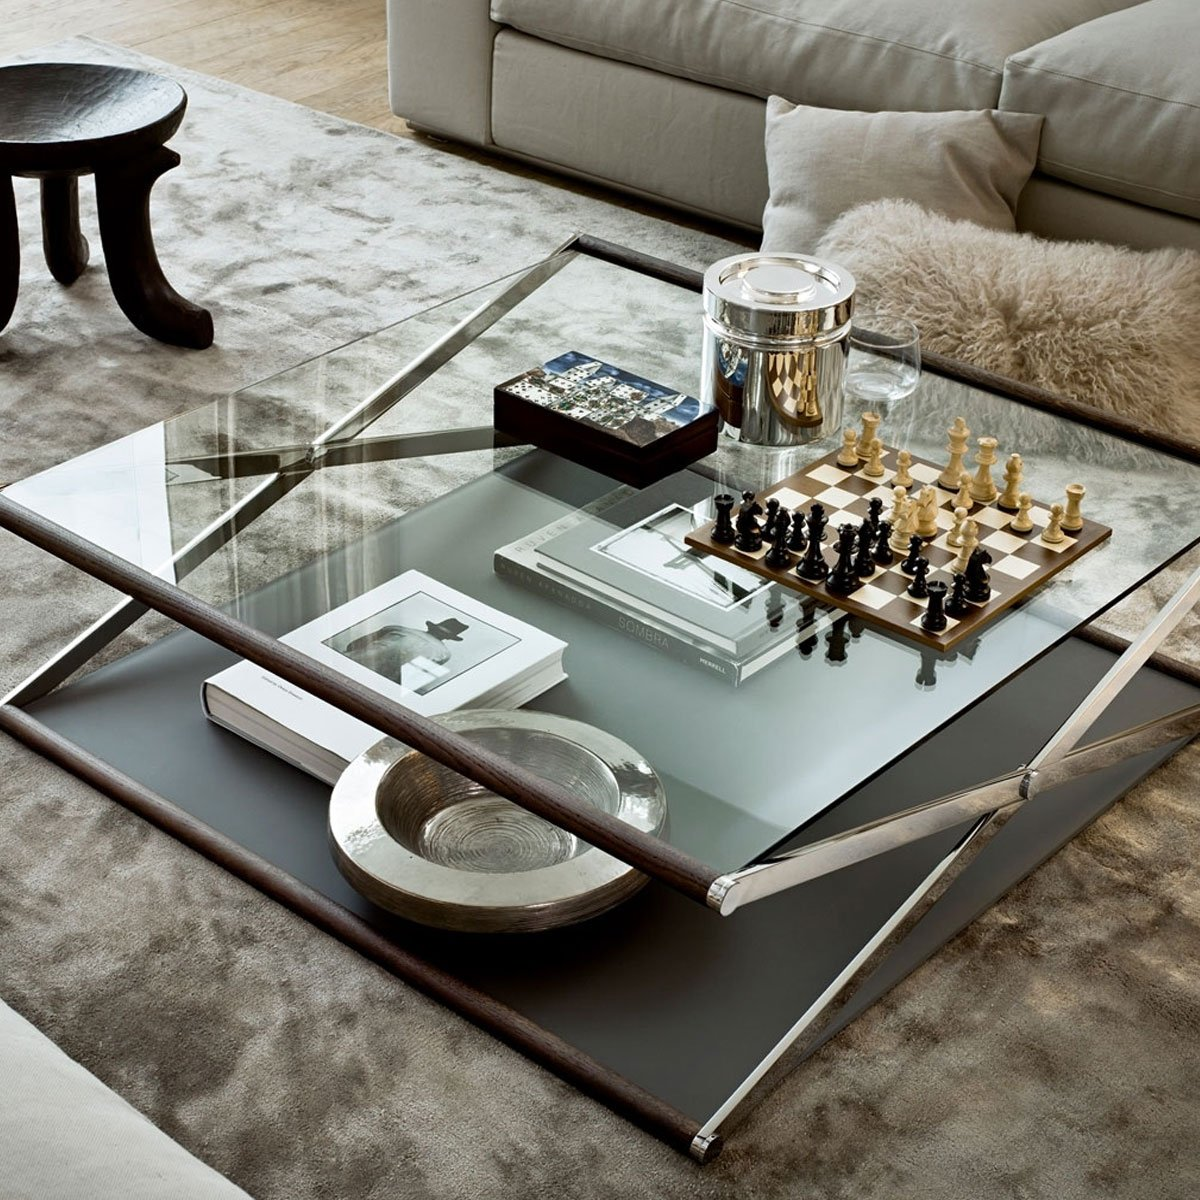 Nox glass wood and metal coffee table by gallotti radic for Glass furniture